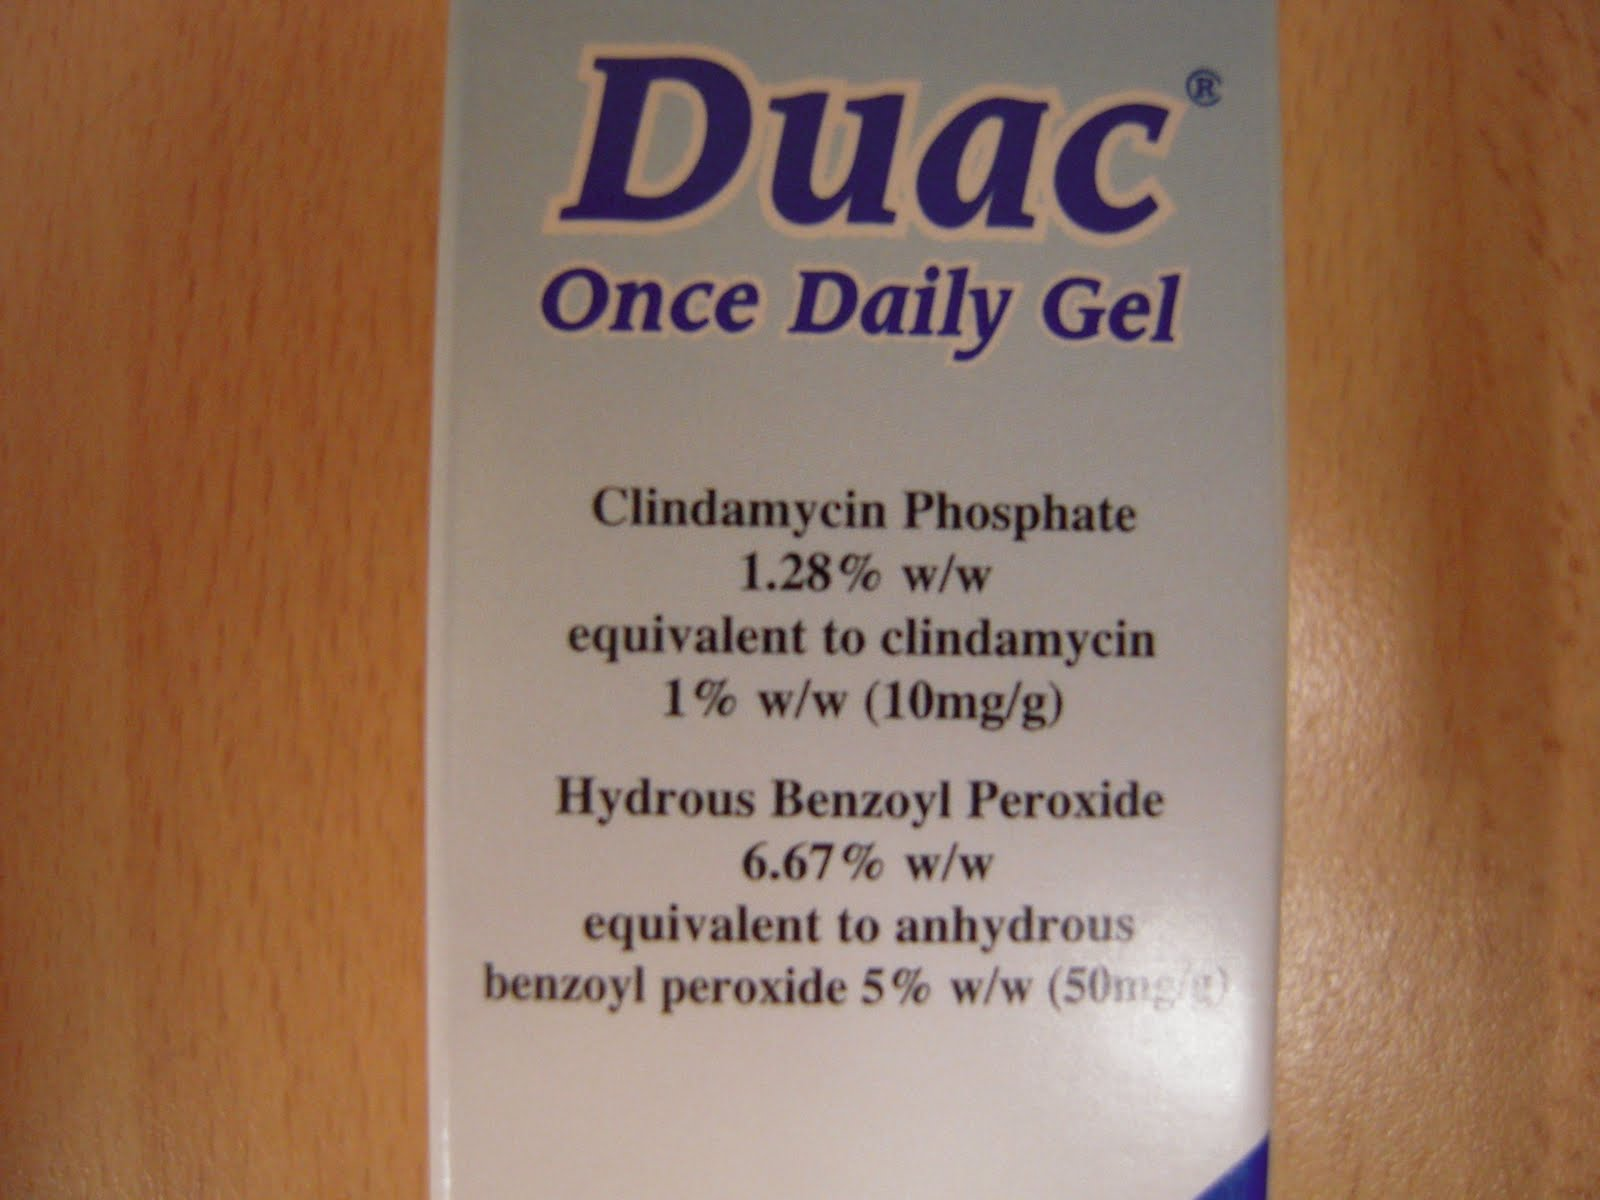 How much is duac gel